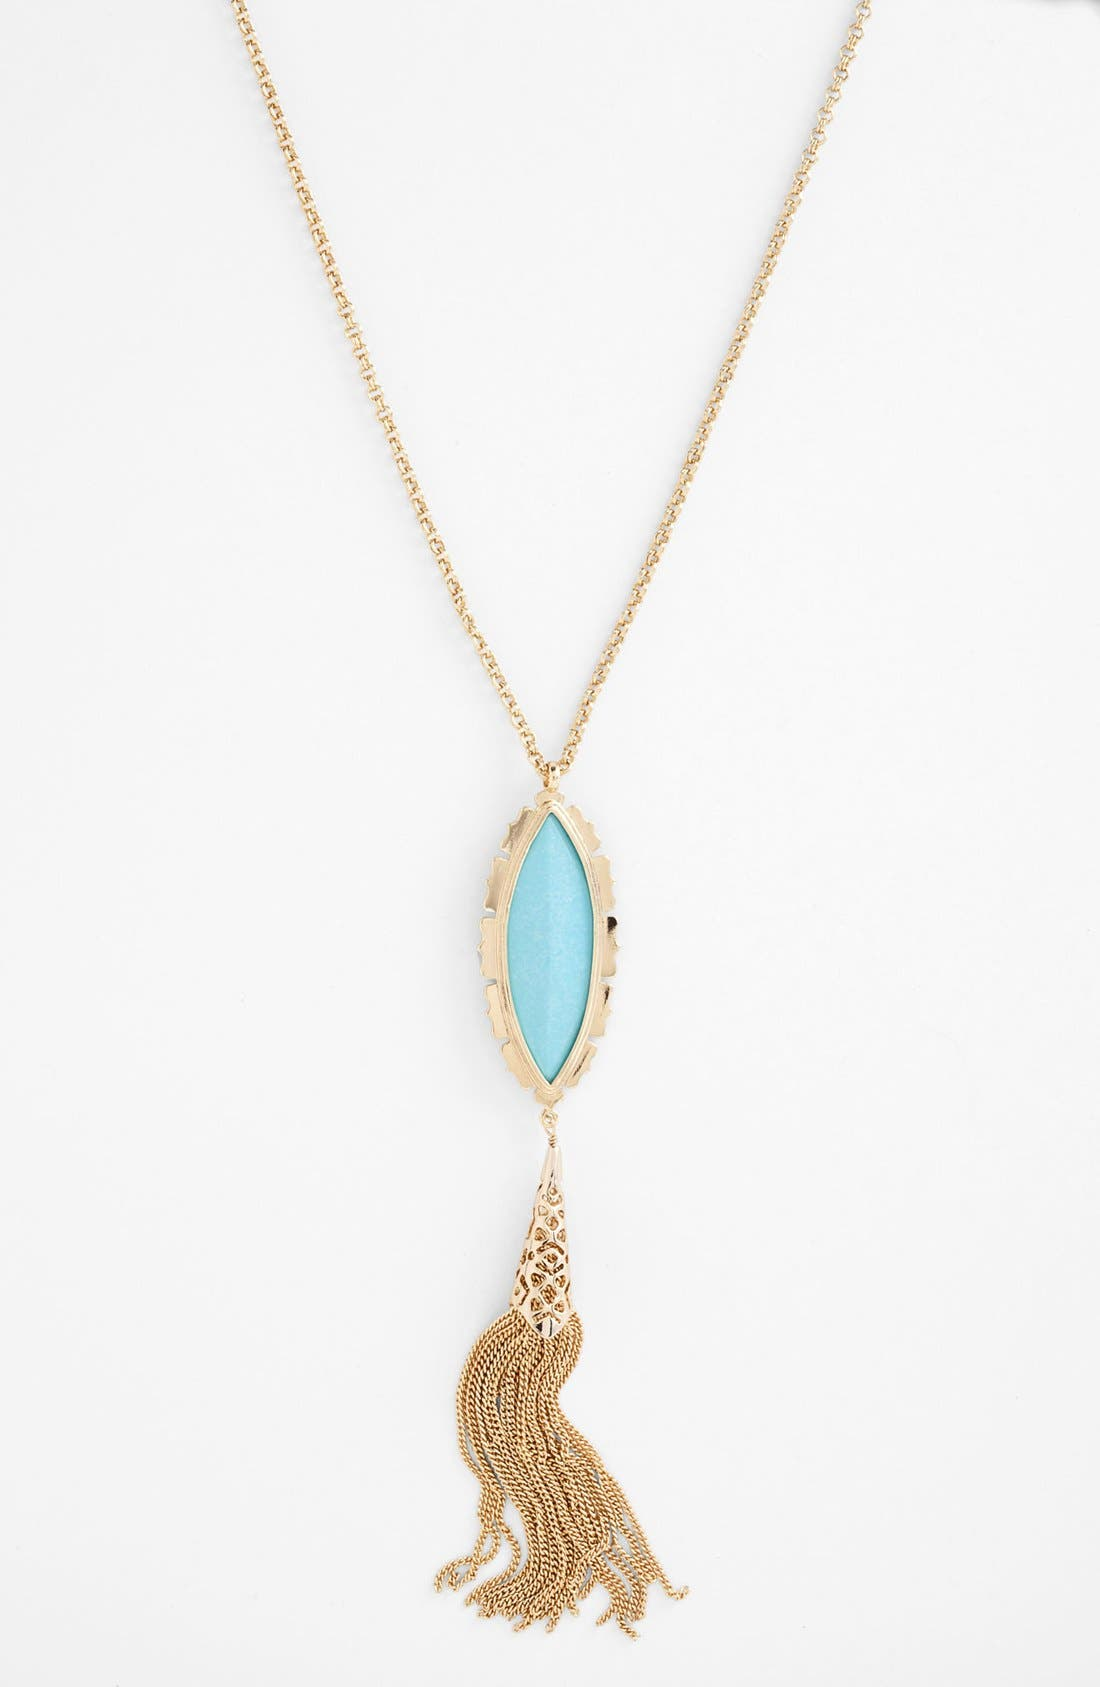 Main Image - Kendra Scott 'Neva' Pendant Necklace